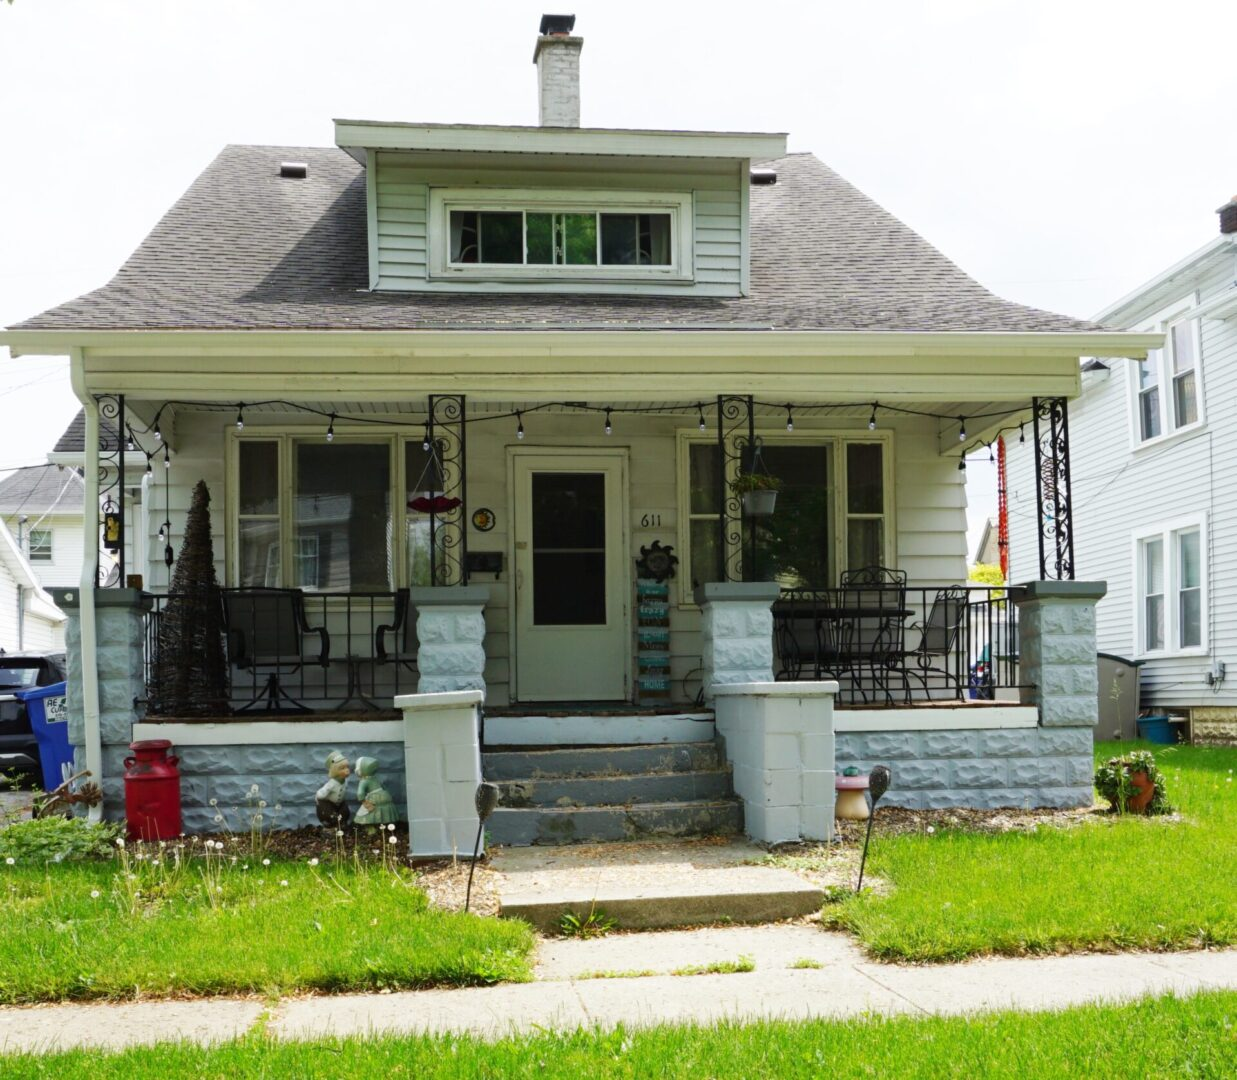 611 W. Front St. (20)